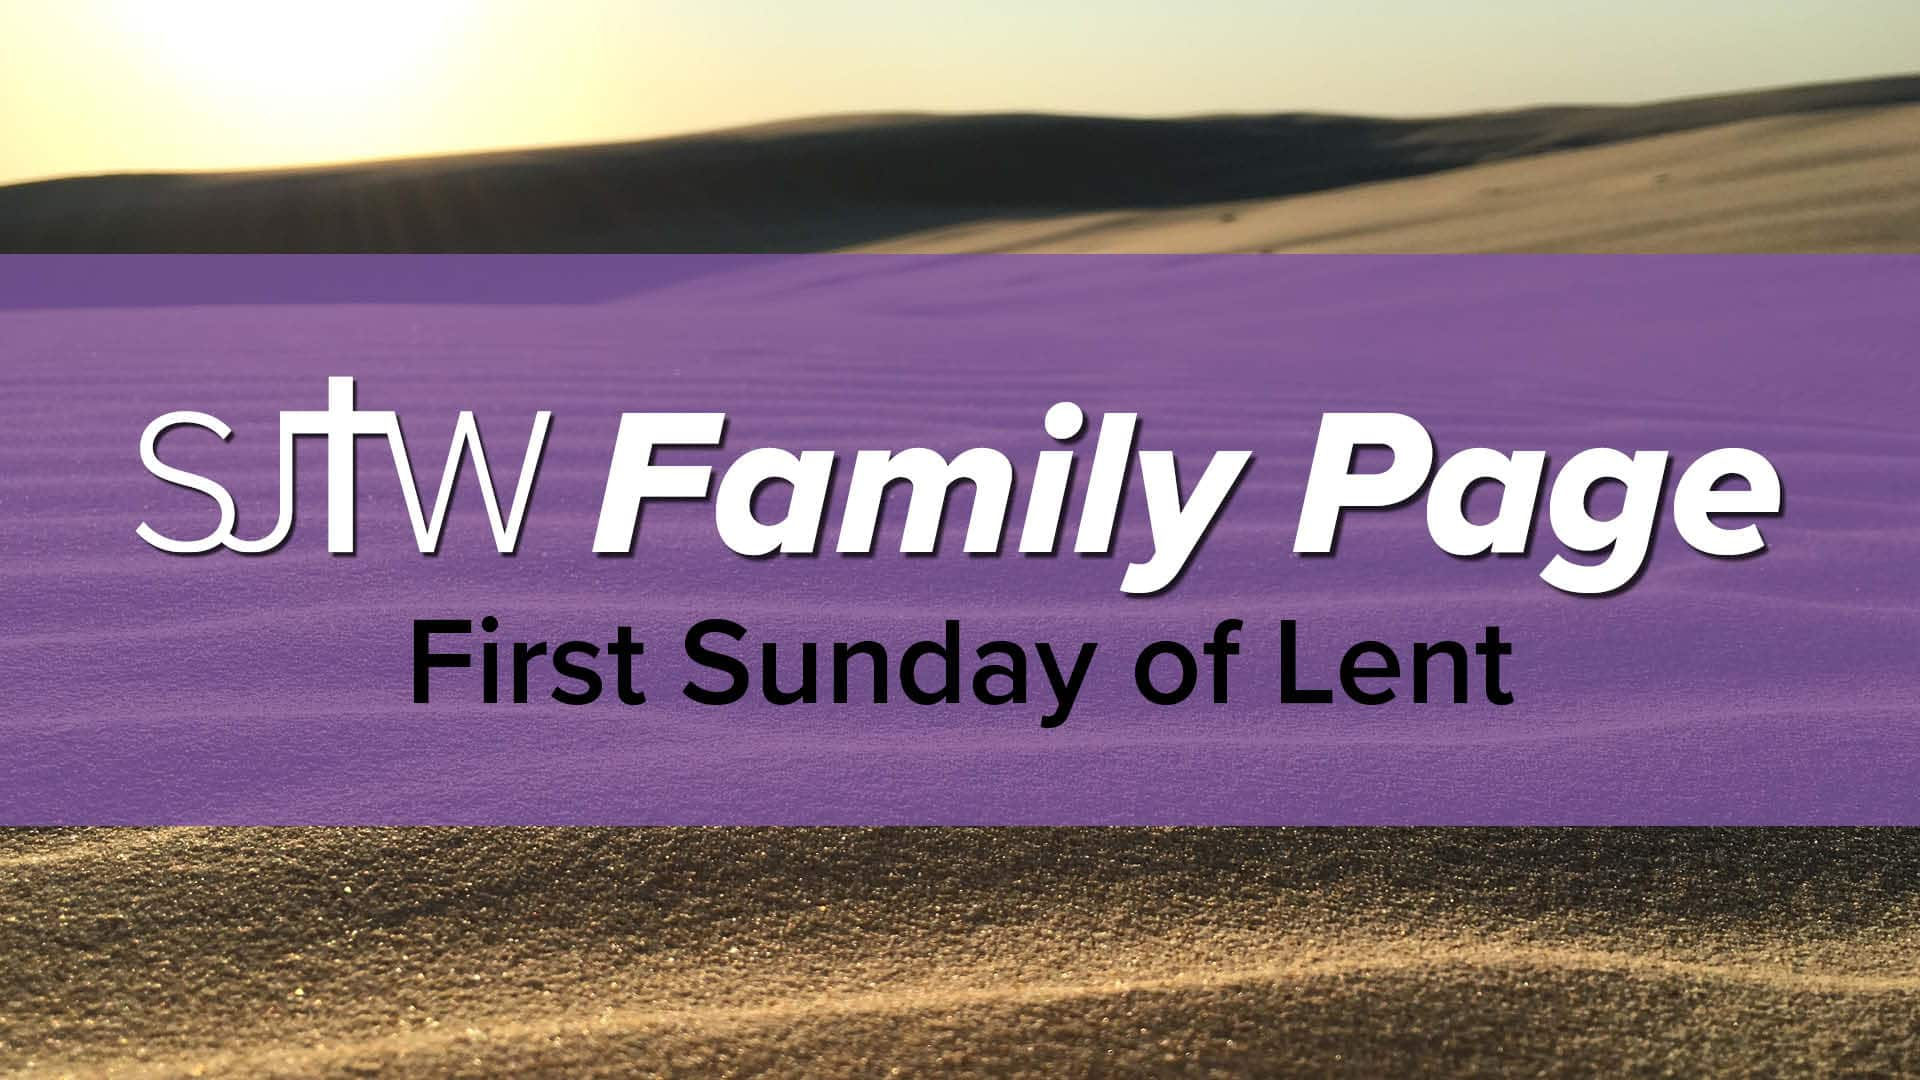 Family Page - First Sunday of Lent